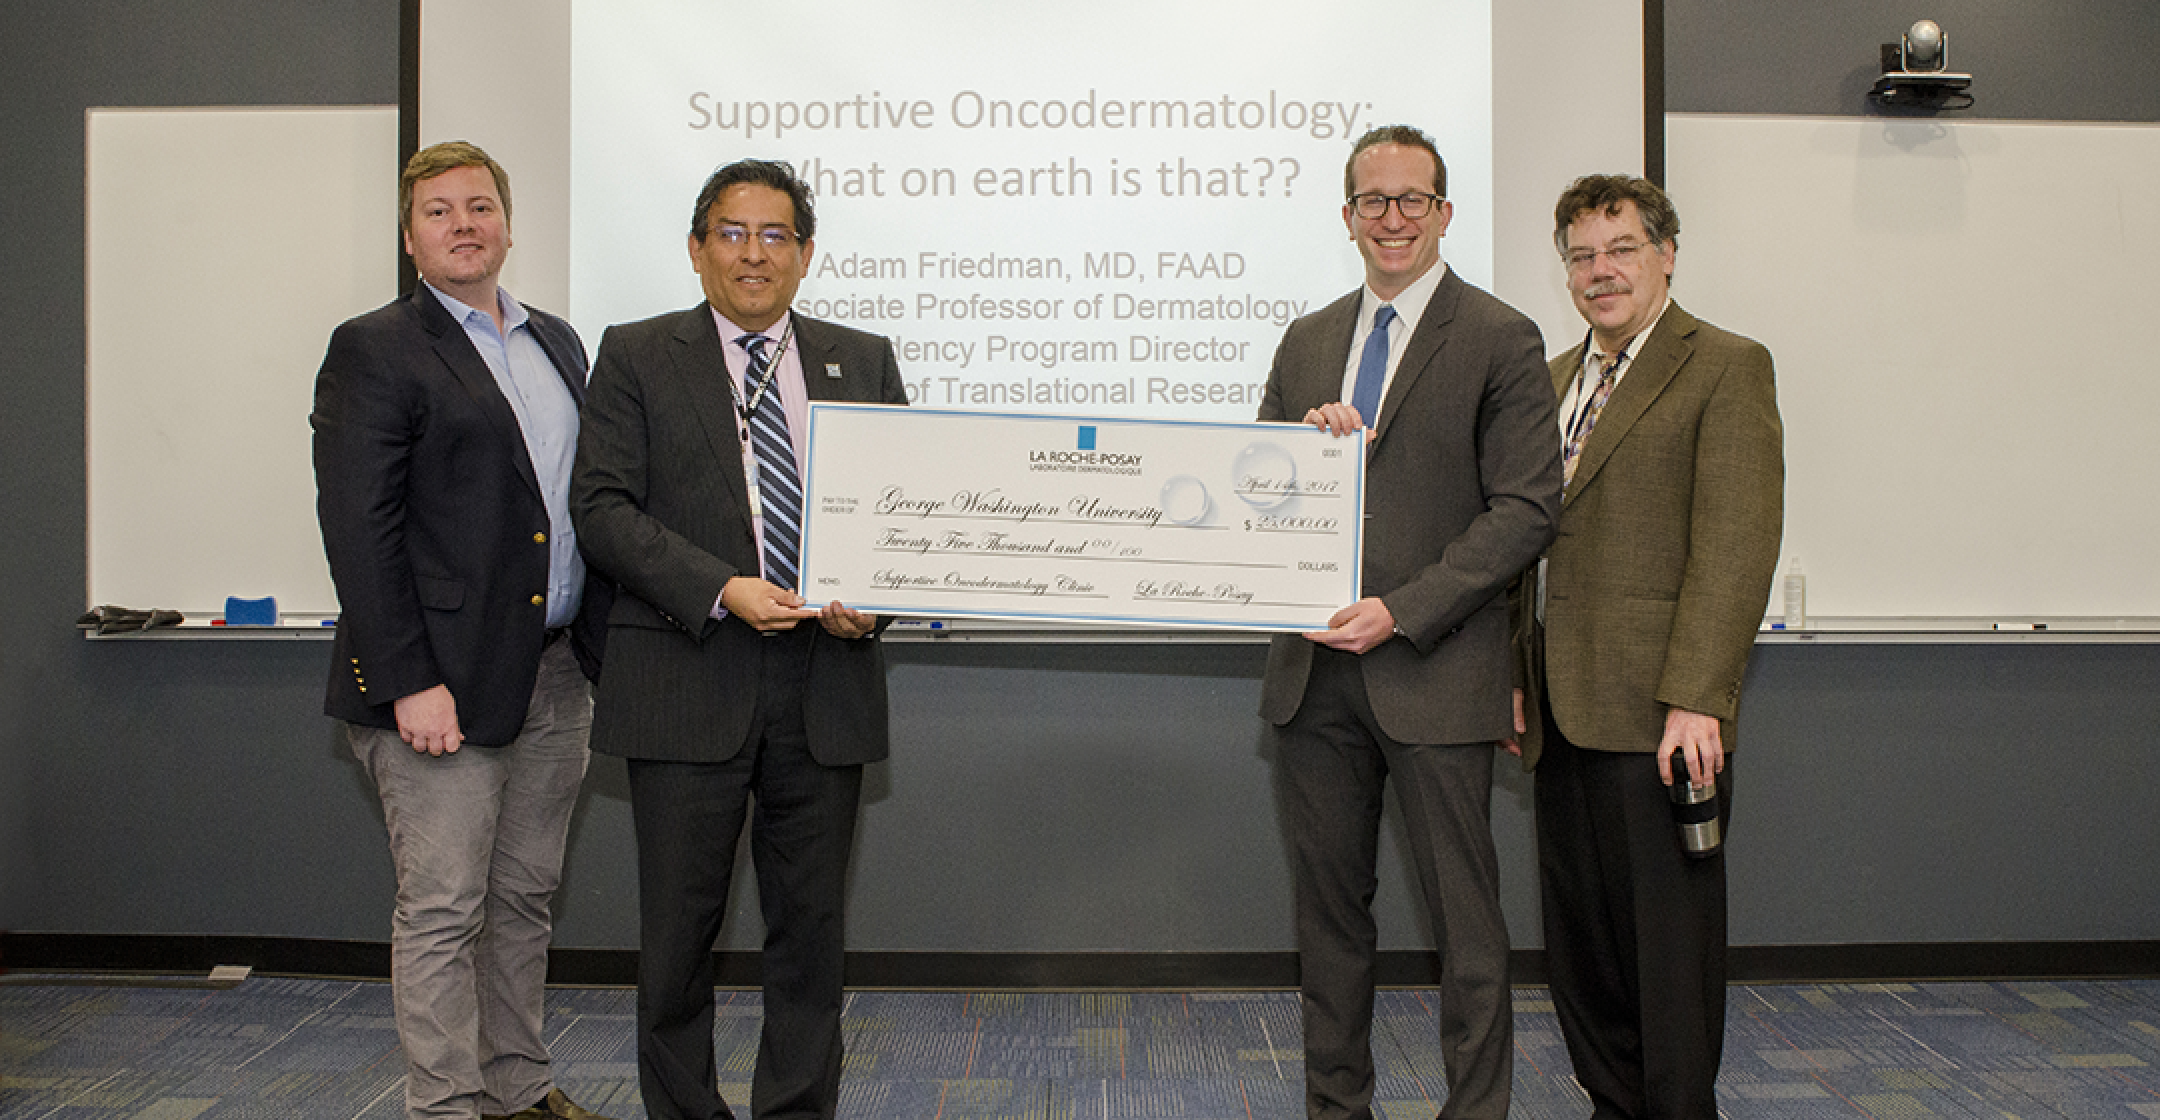 GW Cancer Center opened the Supportive Oncodermatology Clinic